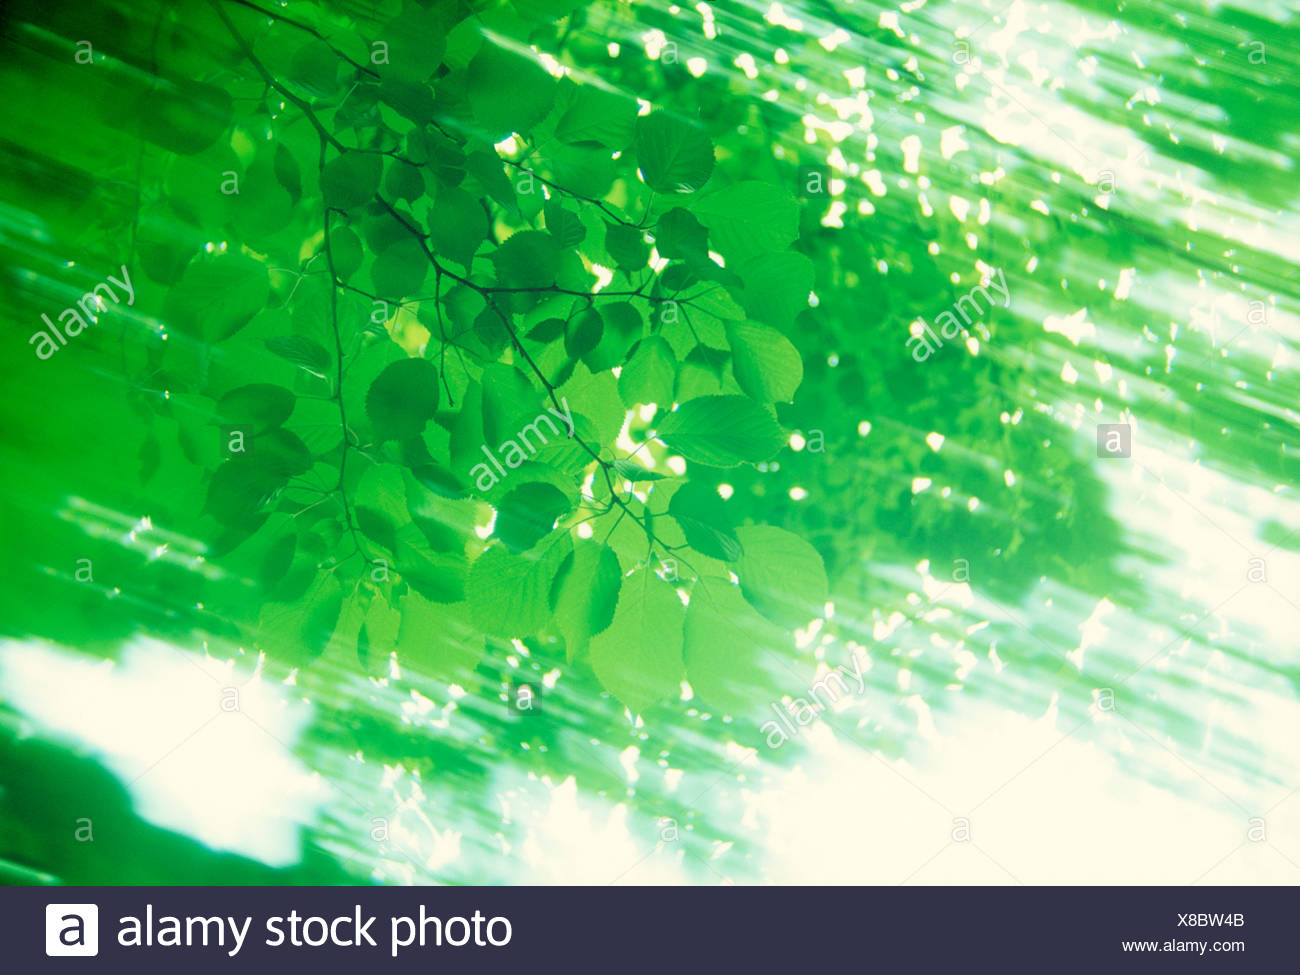 View of sunrays radiating through leaves - Stock Image